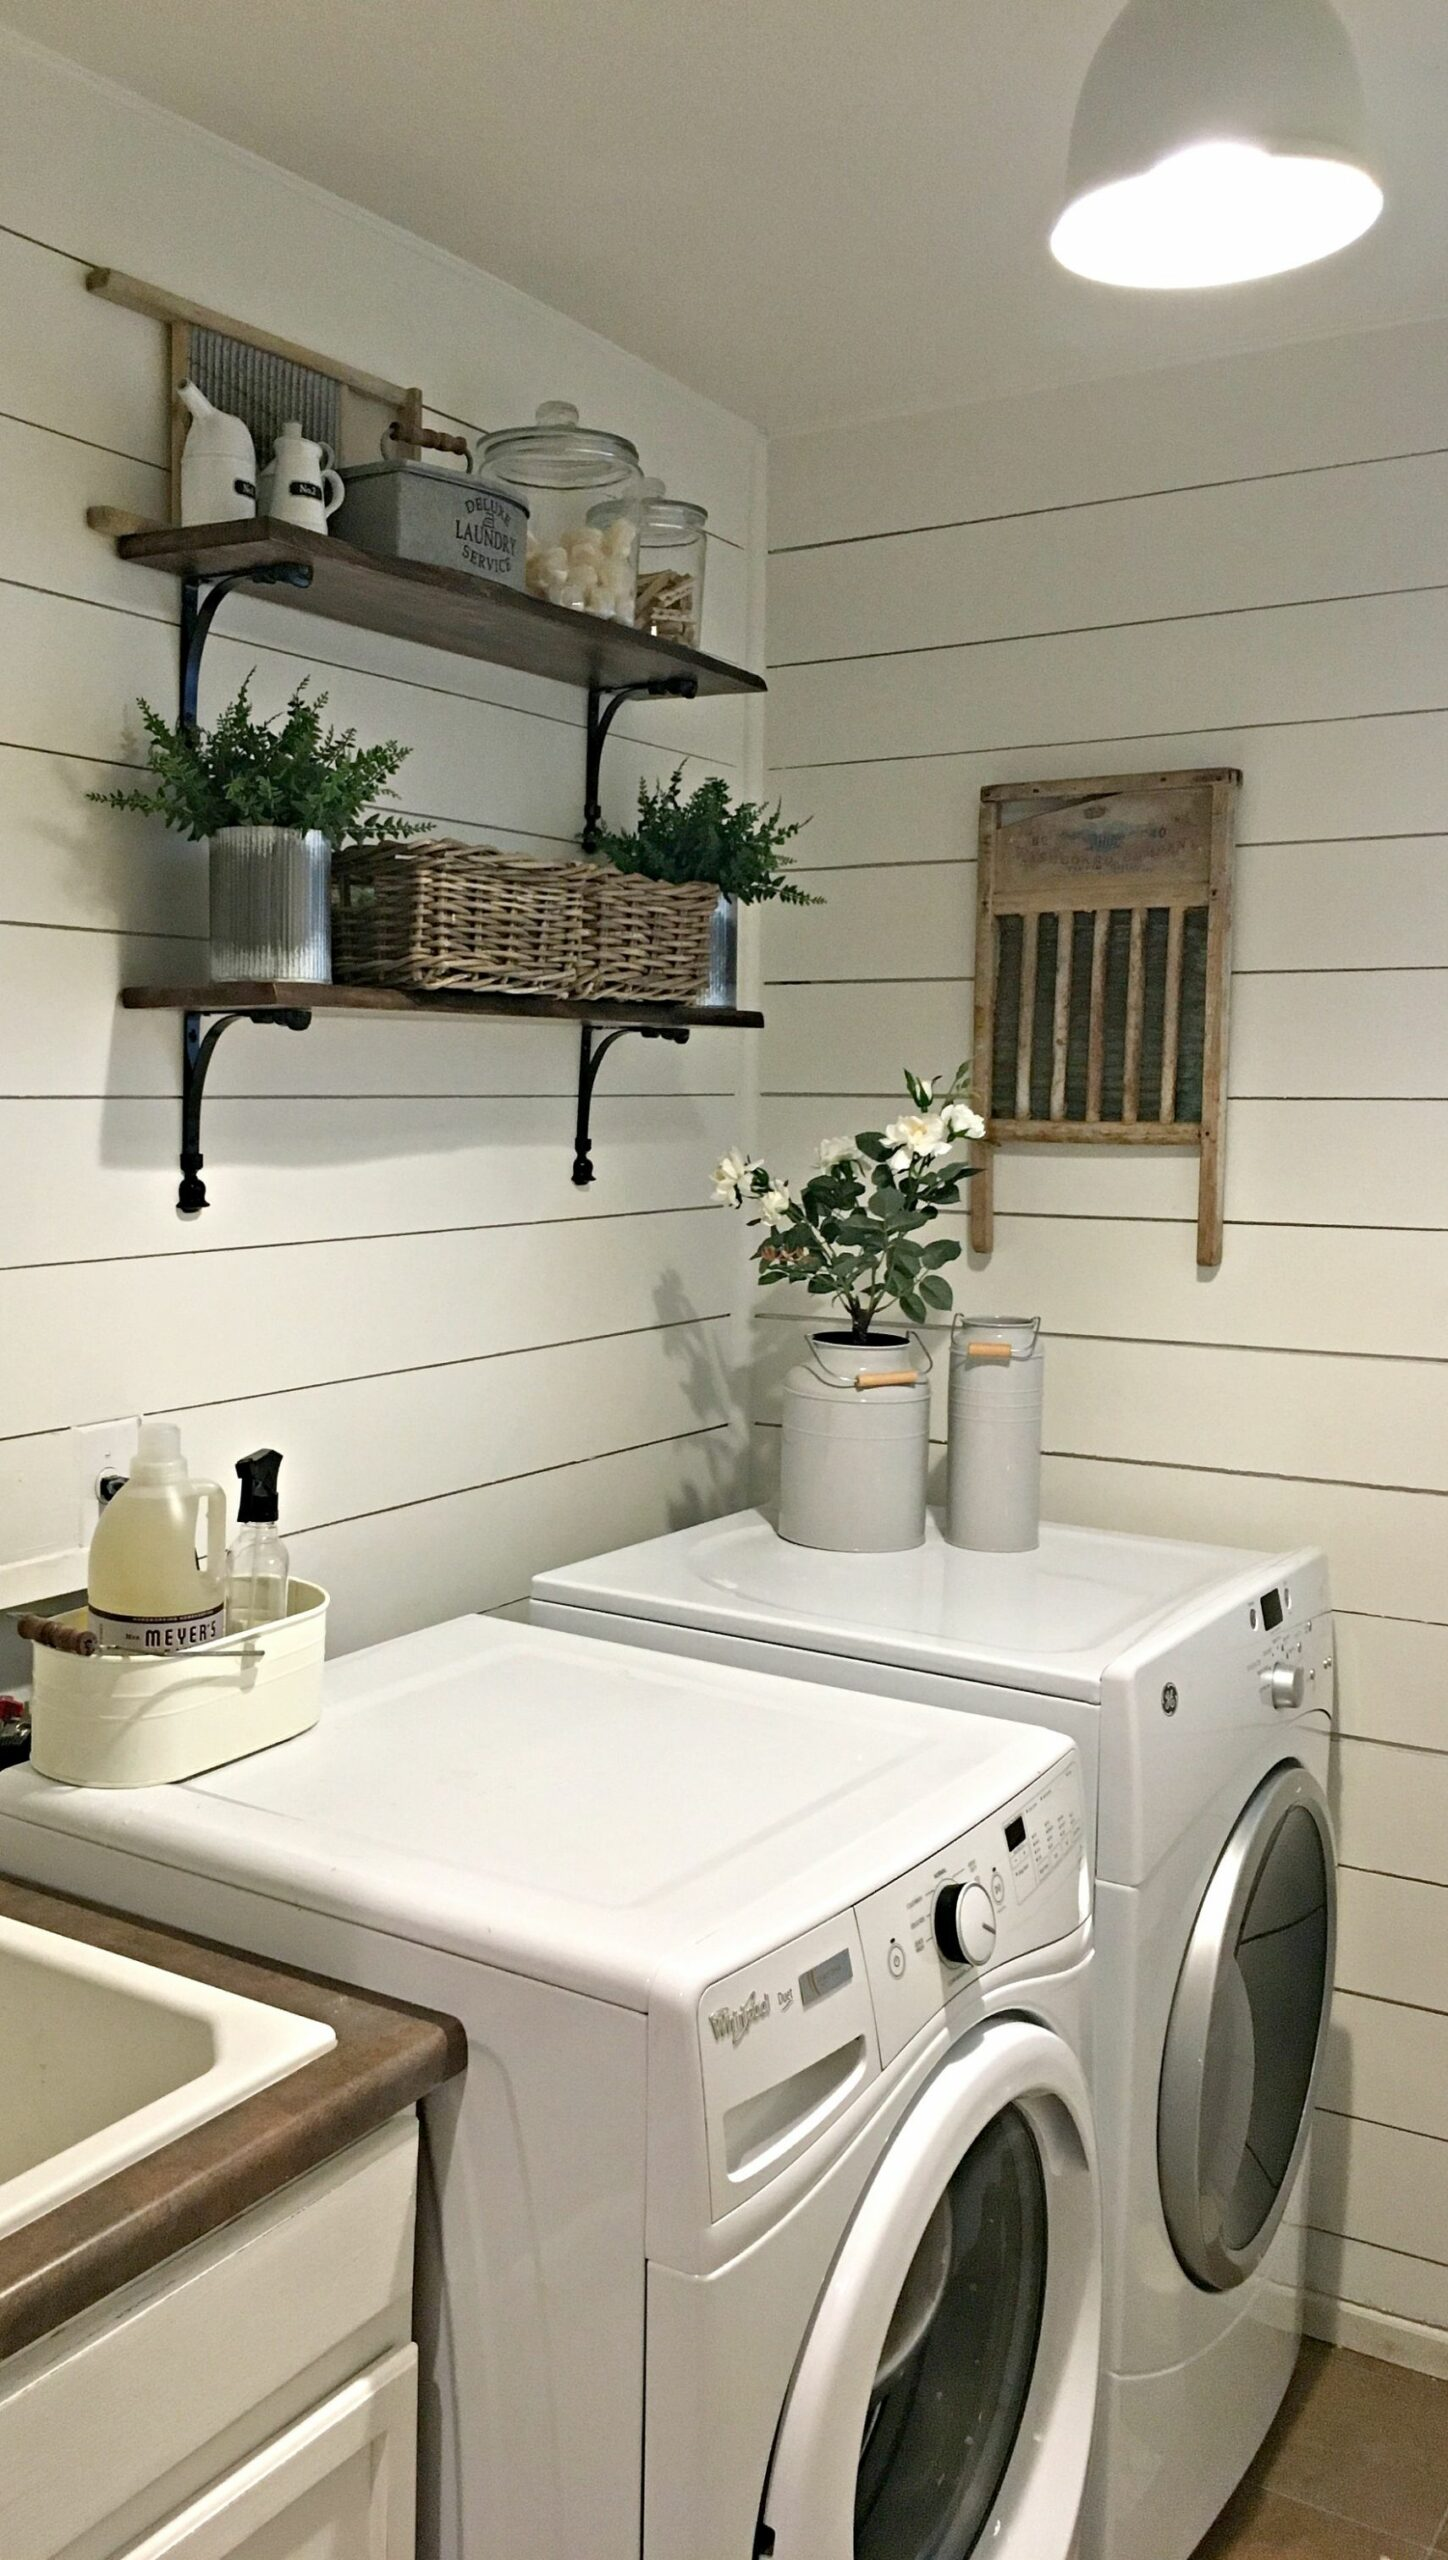 Rustic Laundry Room Reveal - Farmhouse Blooms - laundry room ideas with shiplap